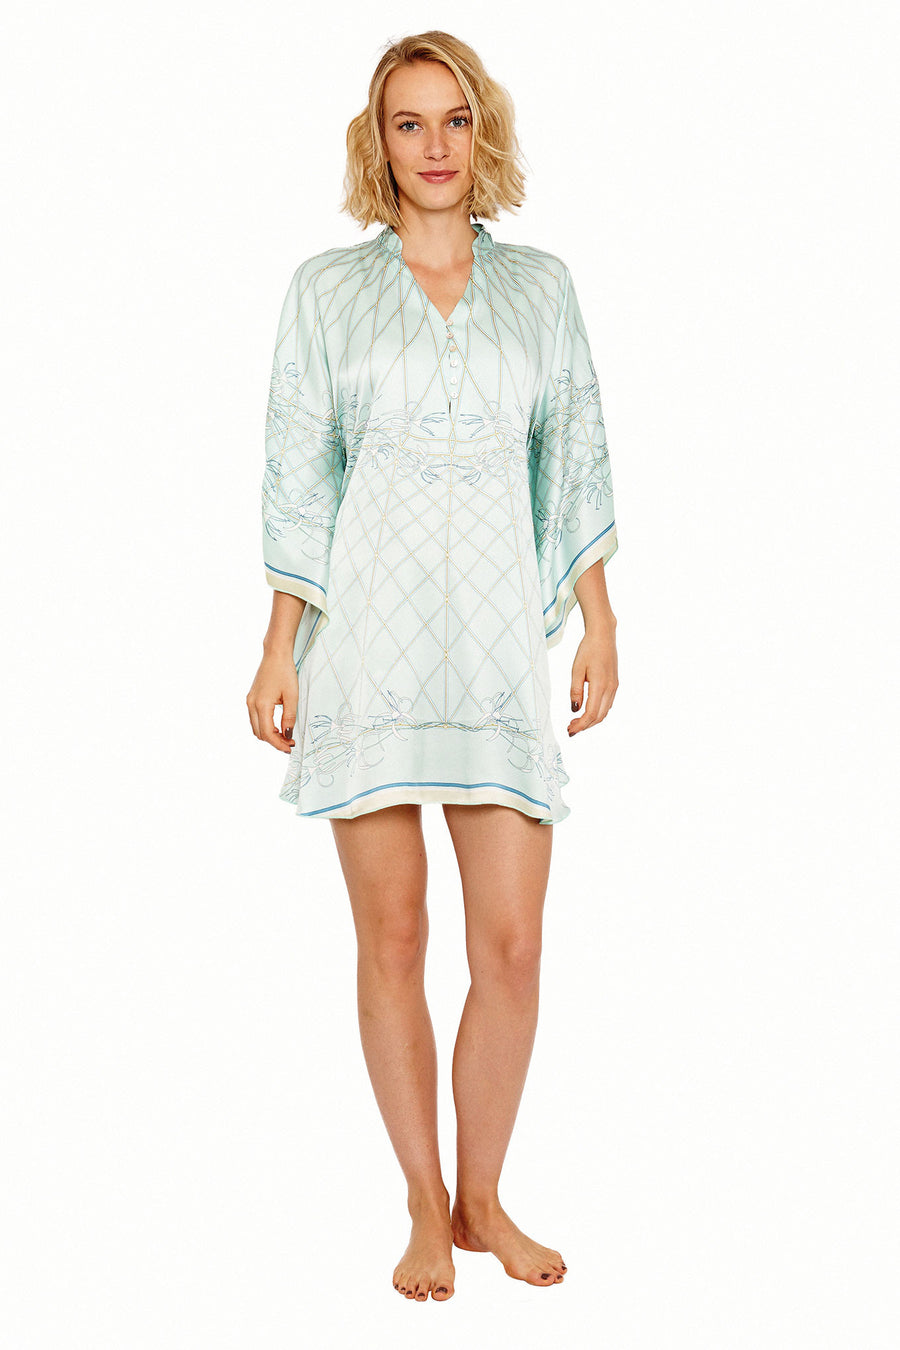 Lotty B Short Kaftan in Silk Crepe-de-Chine (Spiderlily Pale Blue)